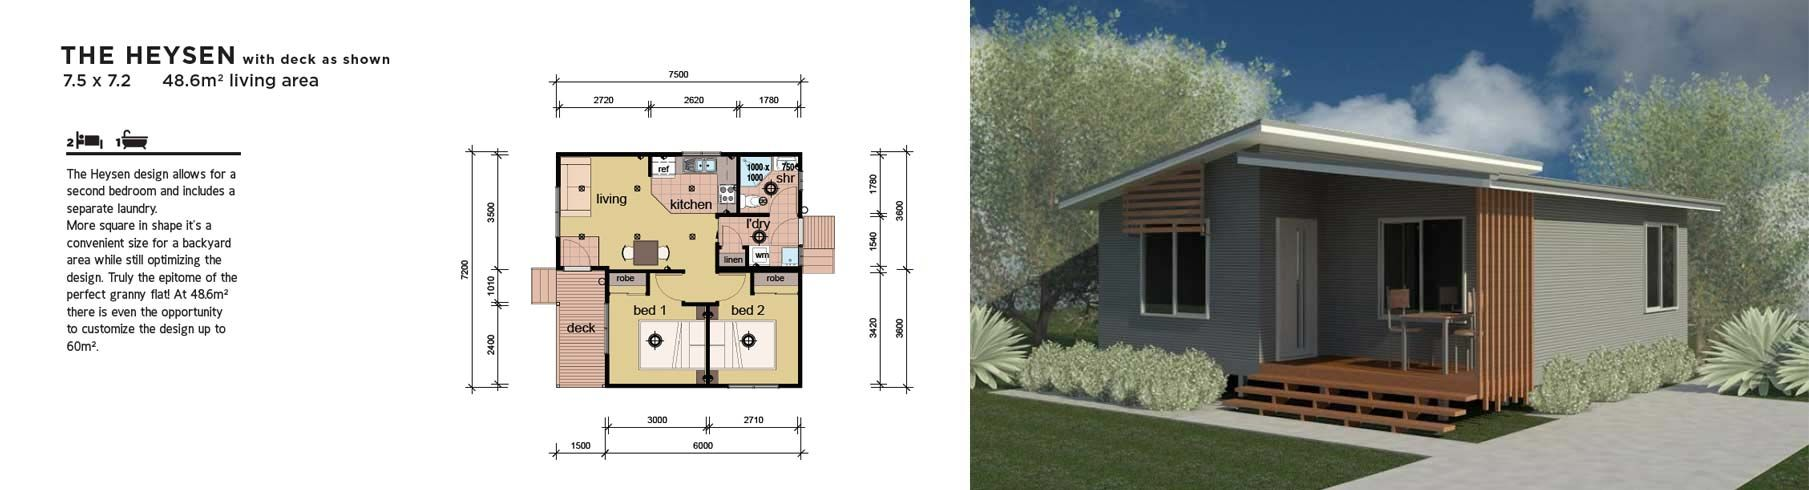 Two Bedroom House Design Pictures Awesome The Heysen 2 Bedroom Granny Flat Pre Fab Home  Homefloorplans Design Ideas